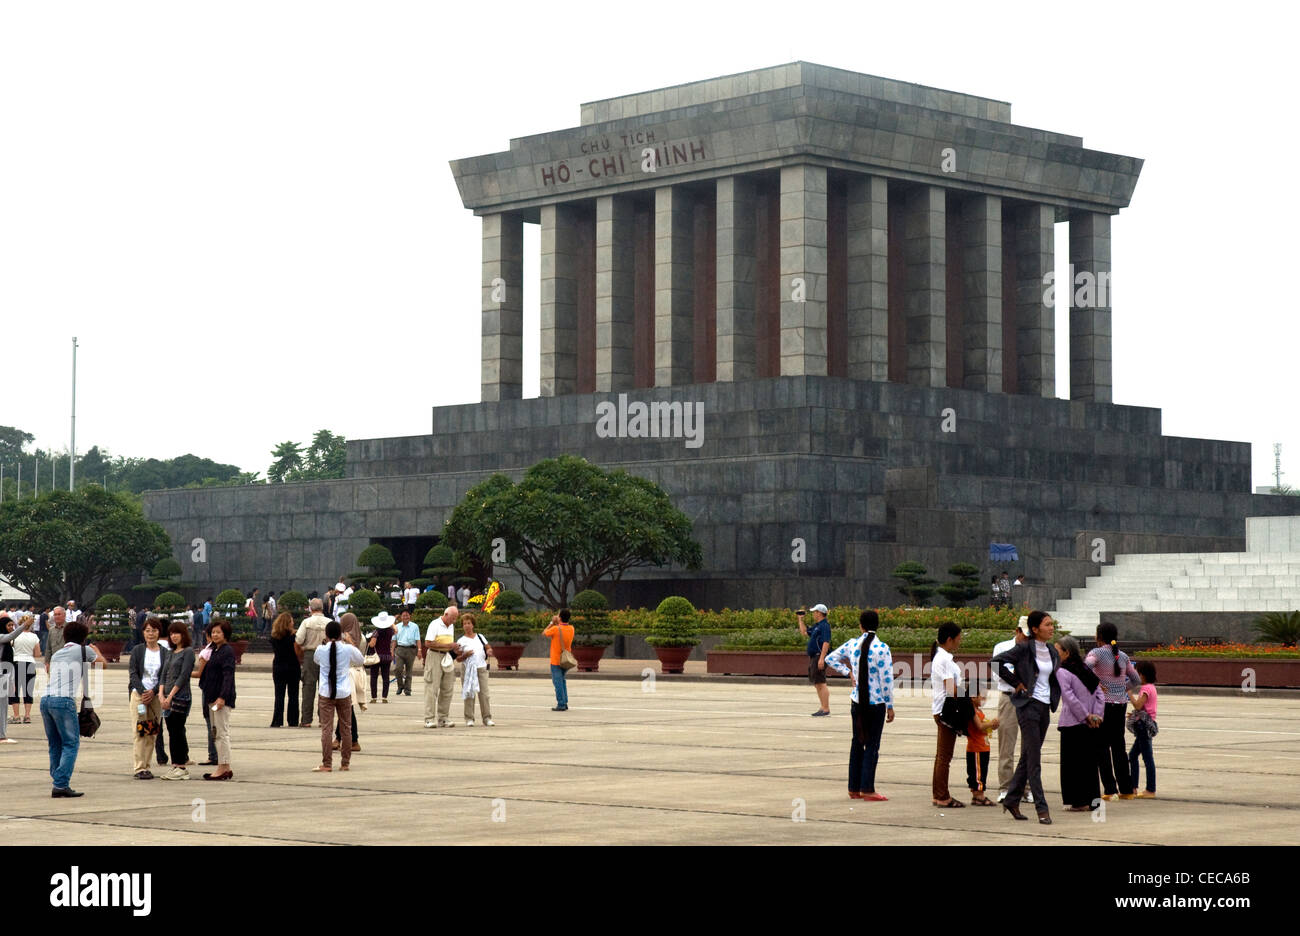 Ho Cho Minh's massive mausoleum, containing his embalmed body, dominates Vietnam's capital, Hanoi - Stock Image